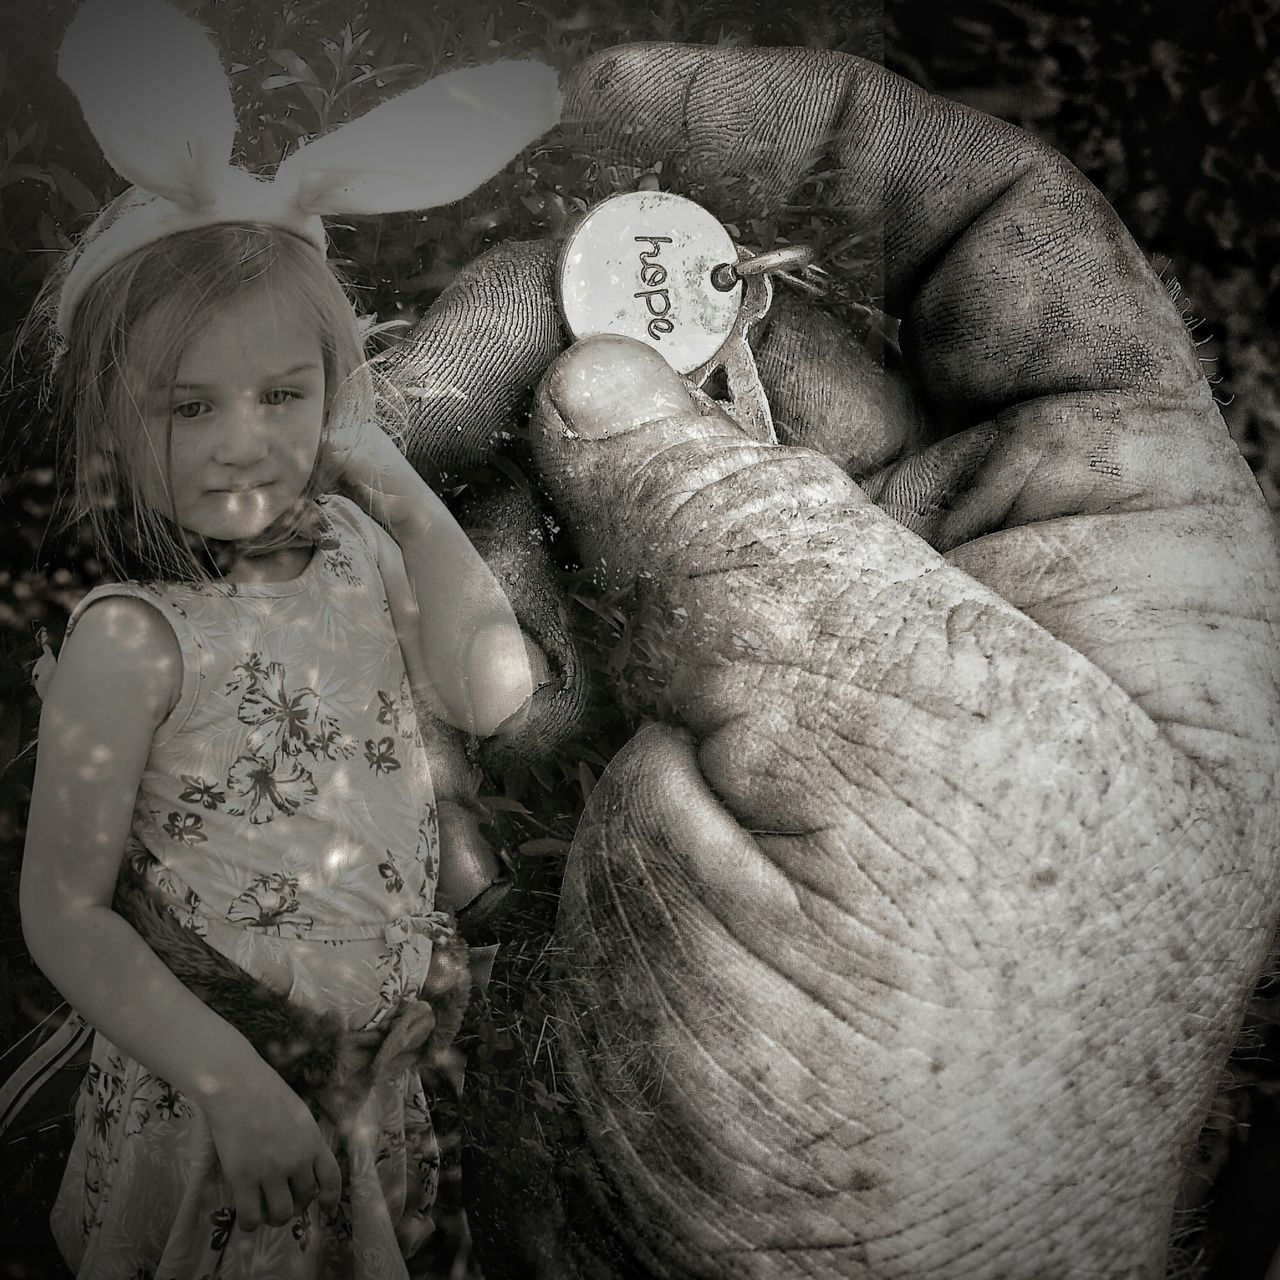 Working Hands Myjourney Blackandwhite Photo Of The Day Blackandwhite Photography Inspirations Everywhere. Brighter Days Hope. Faith. Love. Daddyshands Journeyoflife Photooftheday ILoveThisLife Simple Moments Human Hand Hope Happiness Multiple Image TheThingsILoveMost Myinspirations Enjoying Life Beautiful Daddy's Girl <3 Cute Country Life Portrait